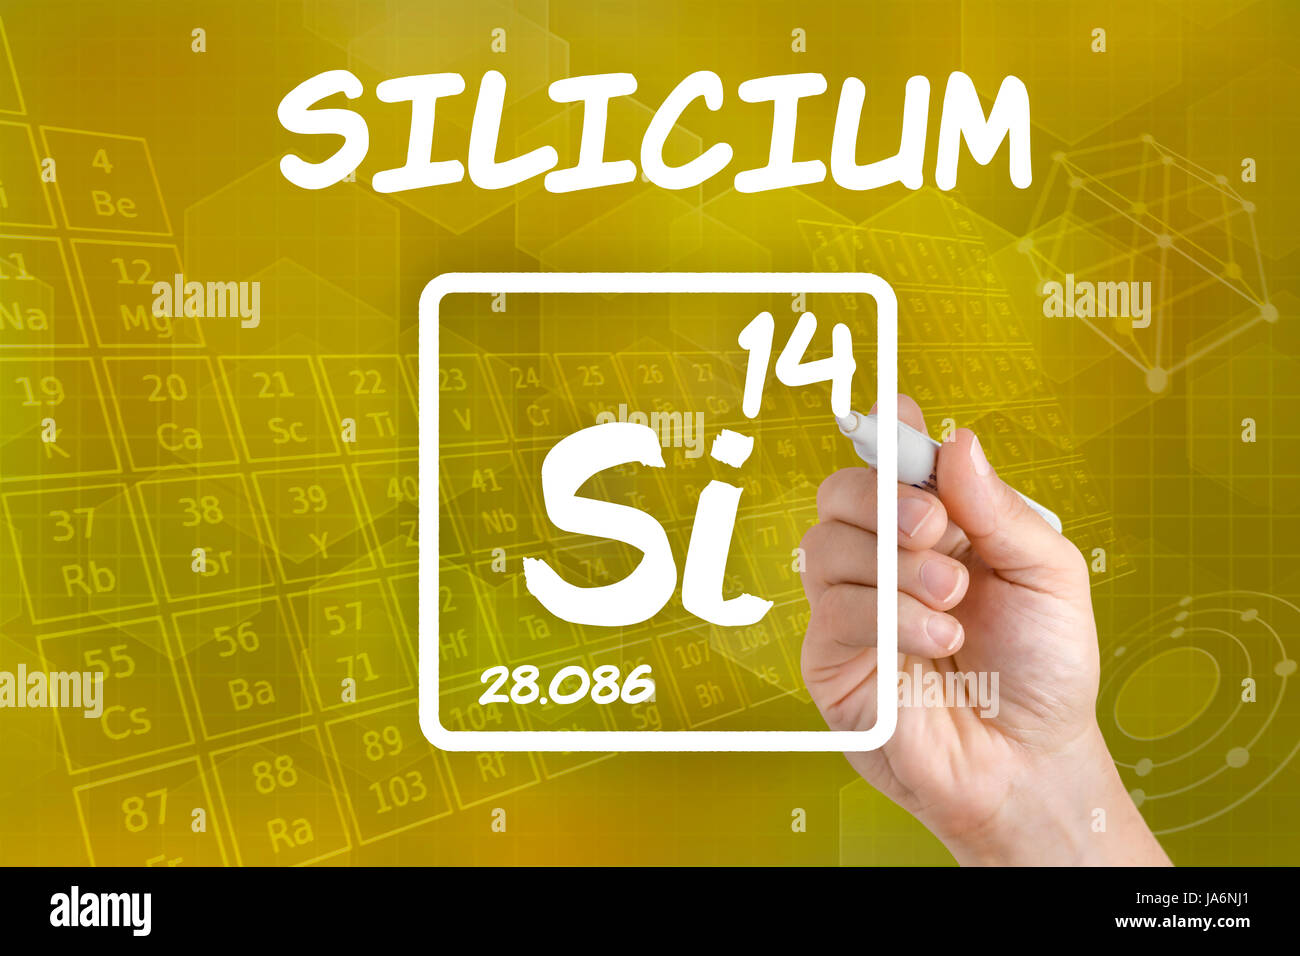 Symbol of the chemical element silicon stock photo 143978185 alamy symbol of the chemical element silicon biocorpaavc Gallery